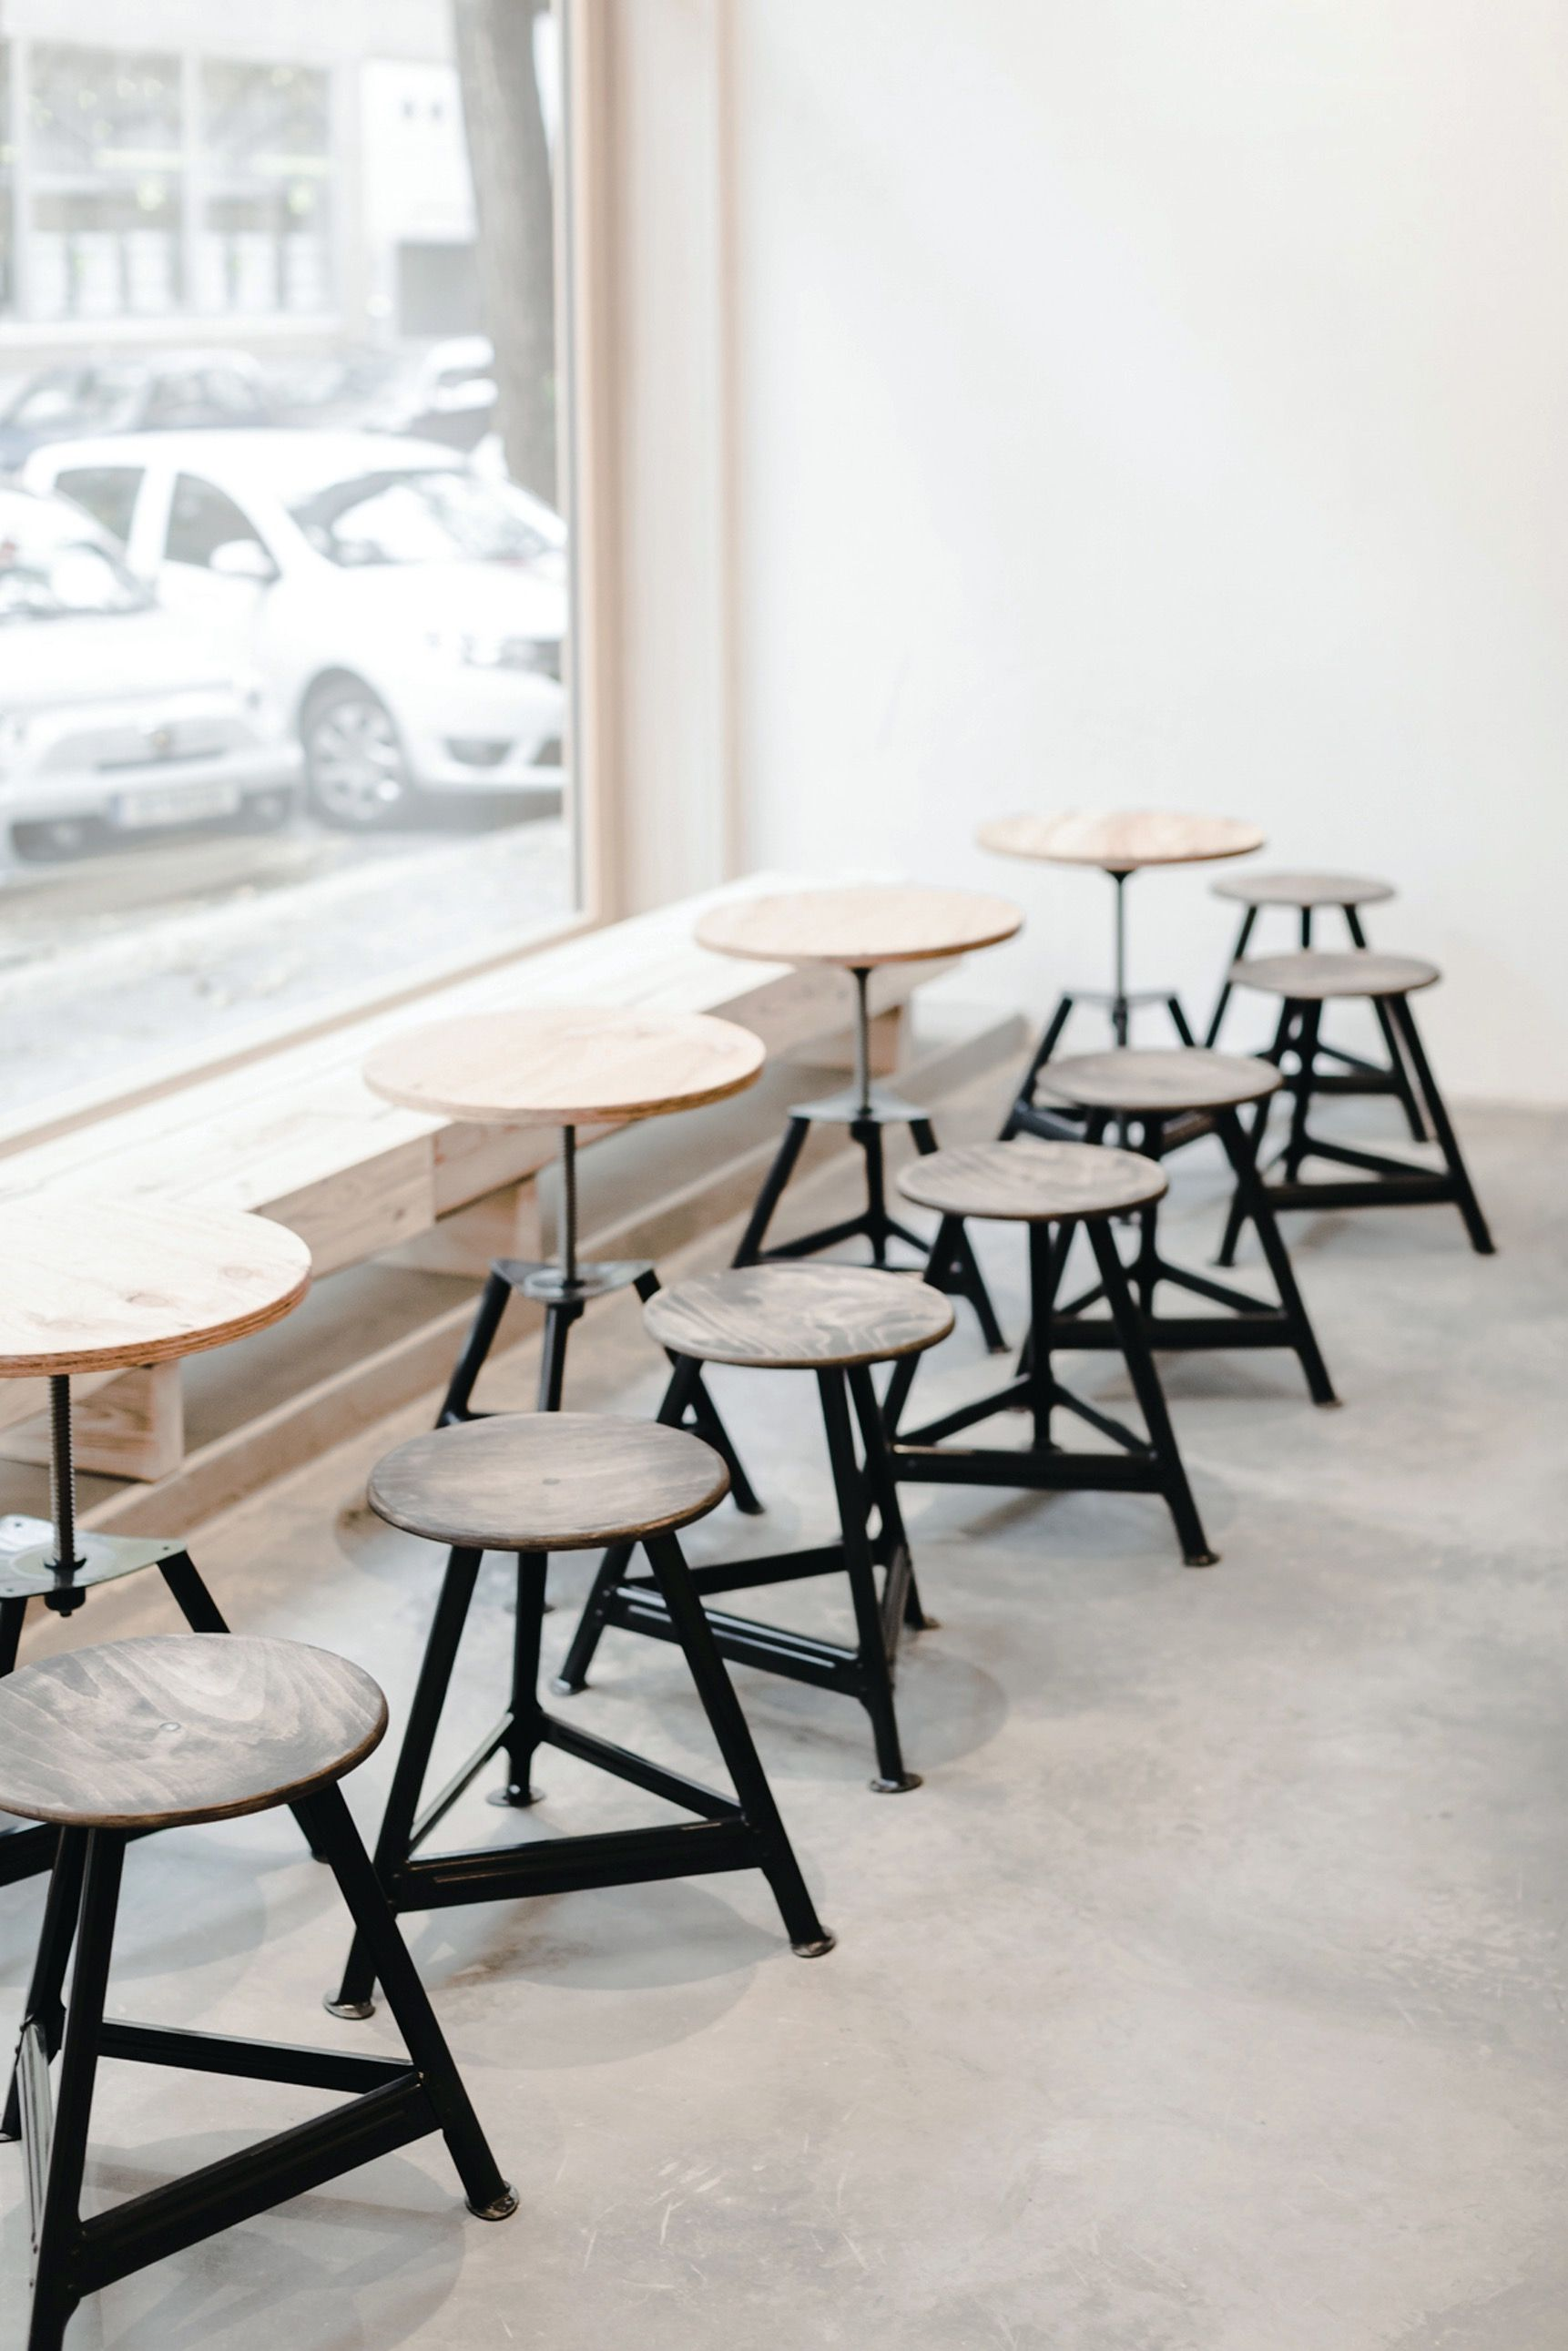 On the Grid :: Tribeka, Innere Stadt, Graz | Furniture | Pinterest ...